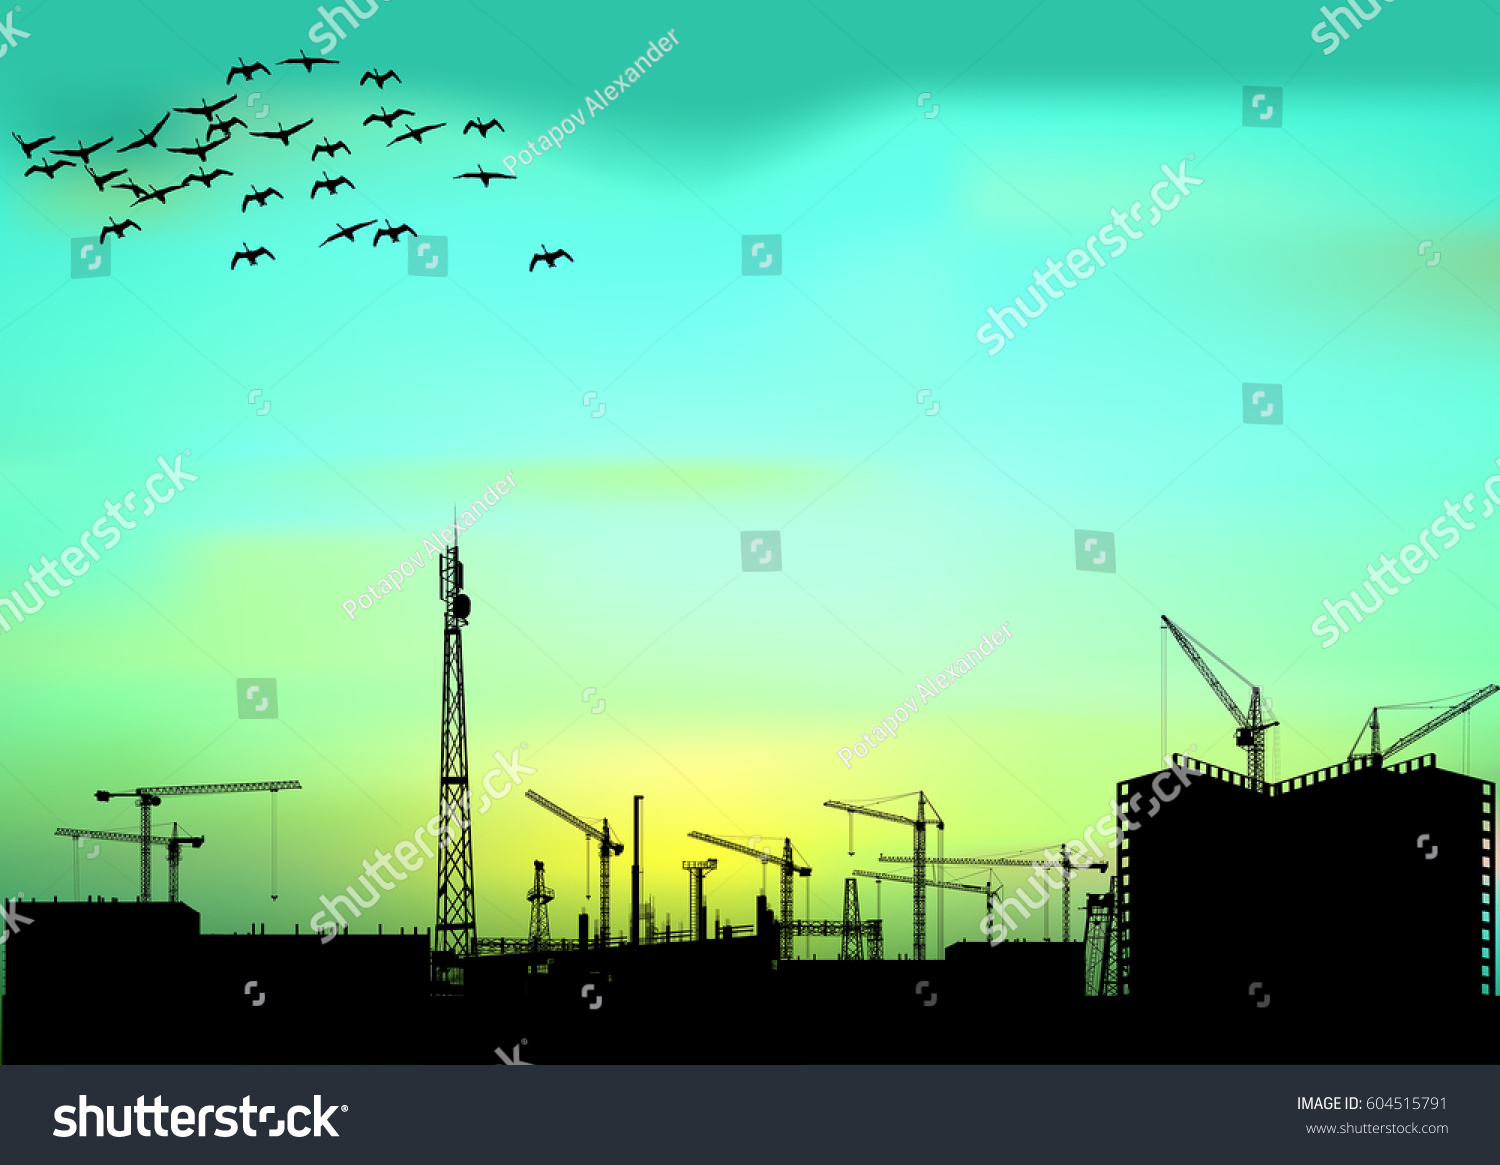 Illustration House Building Flying Birds 604515791